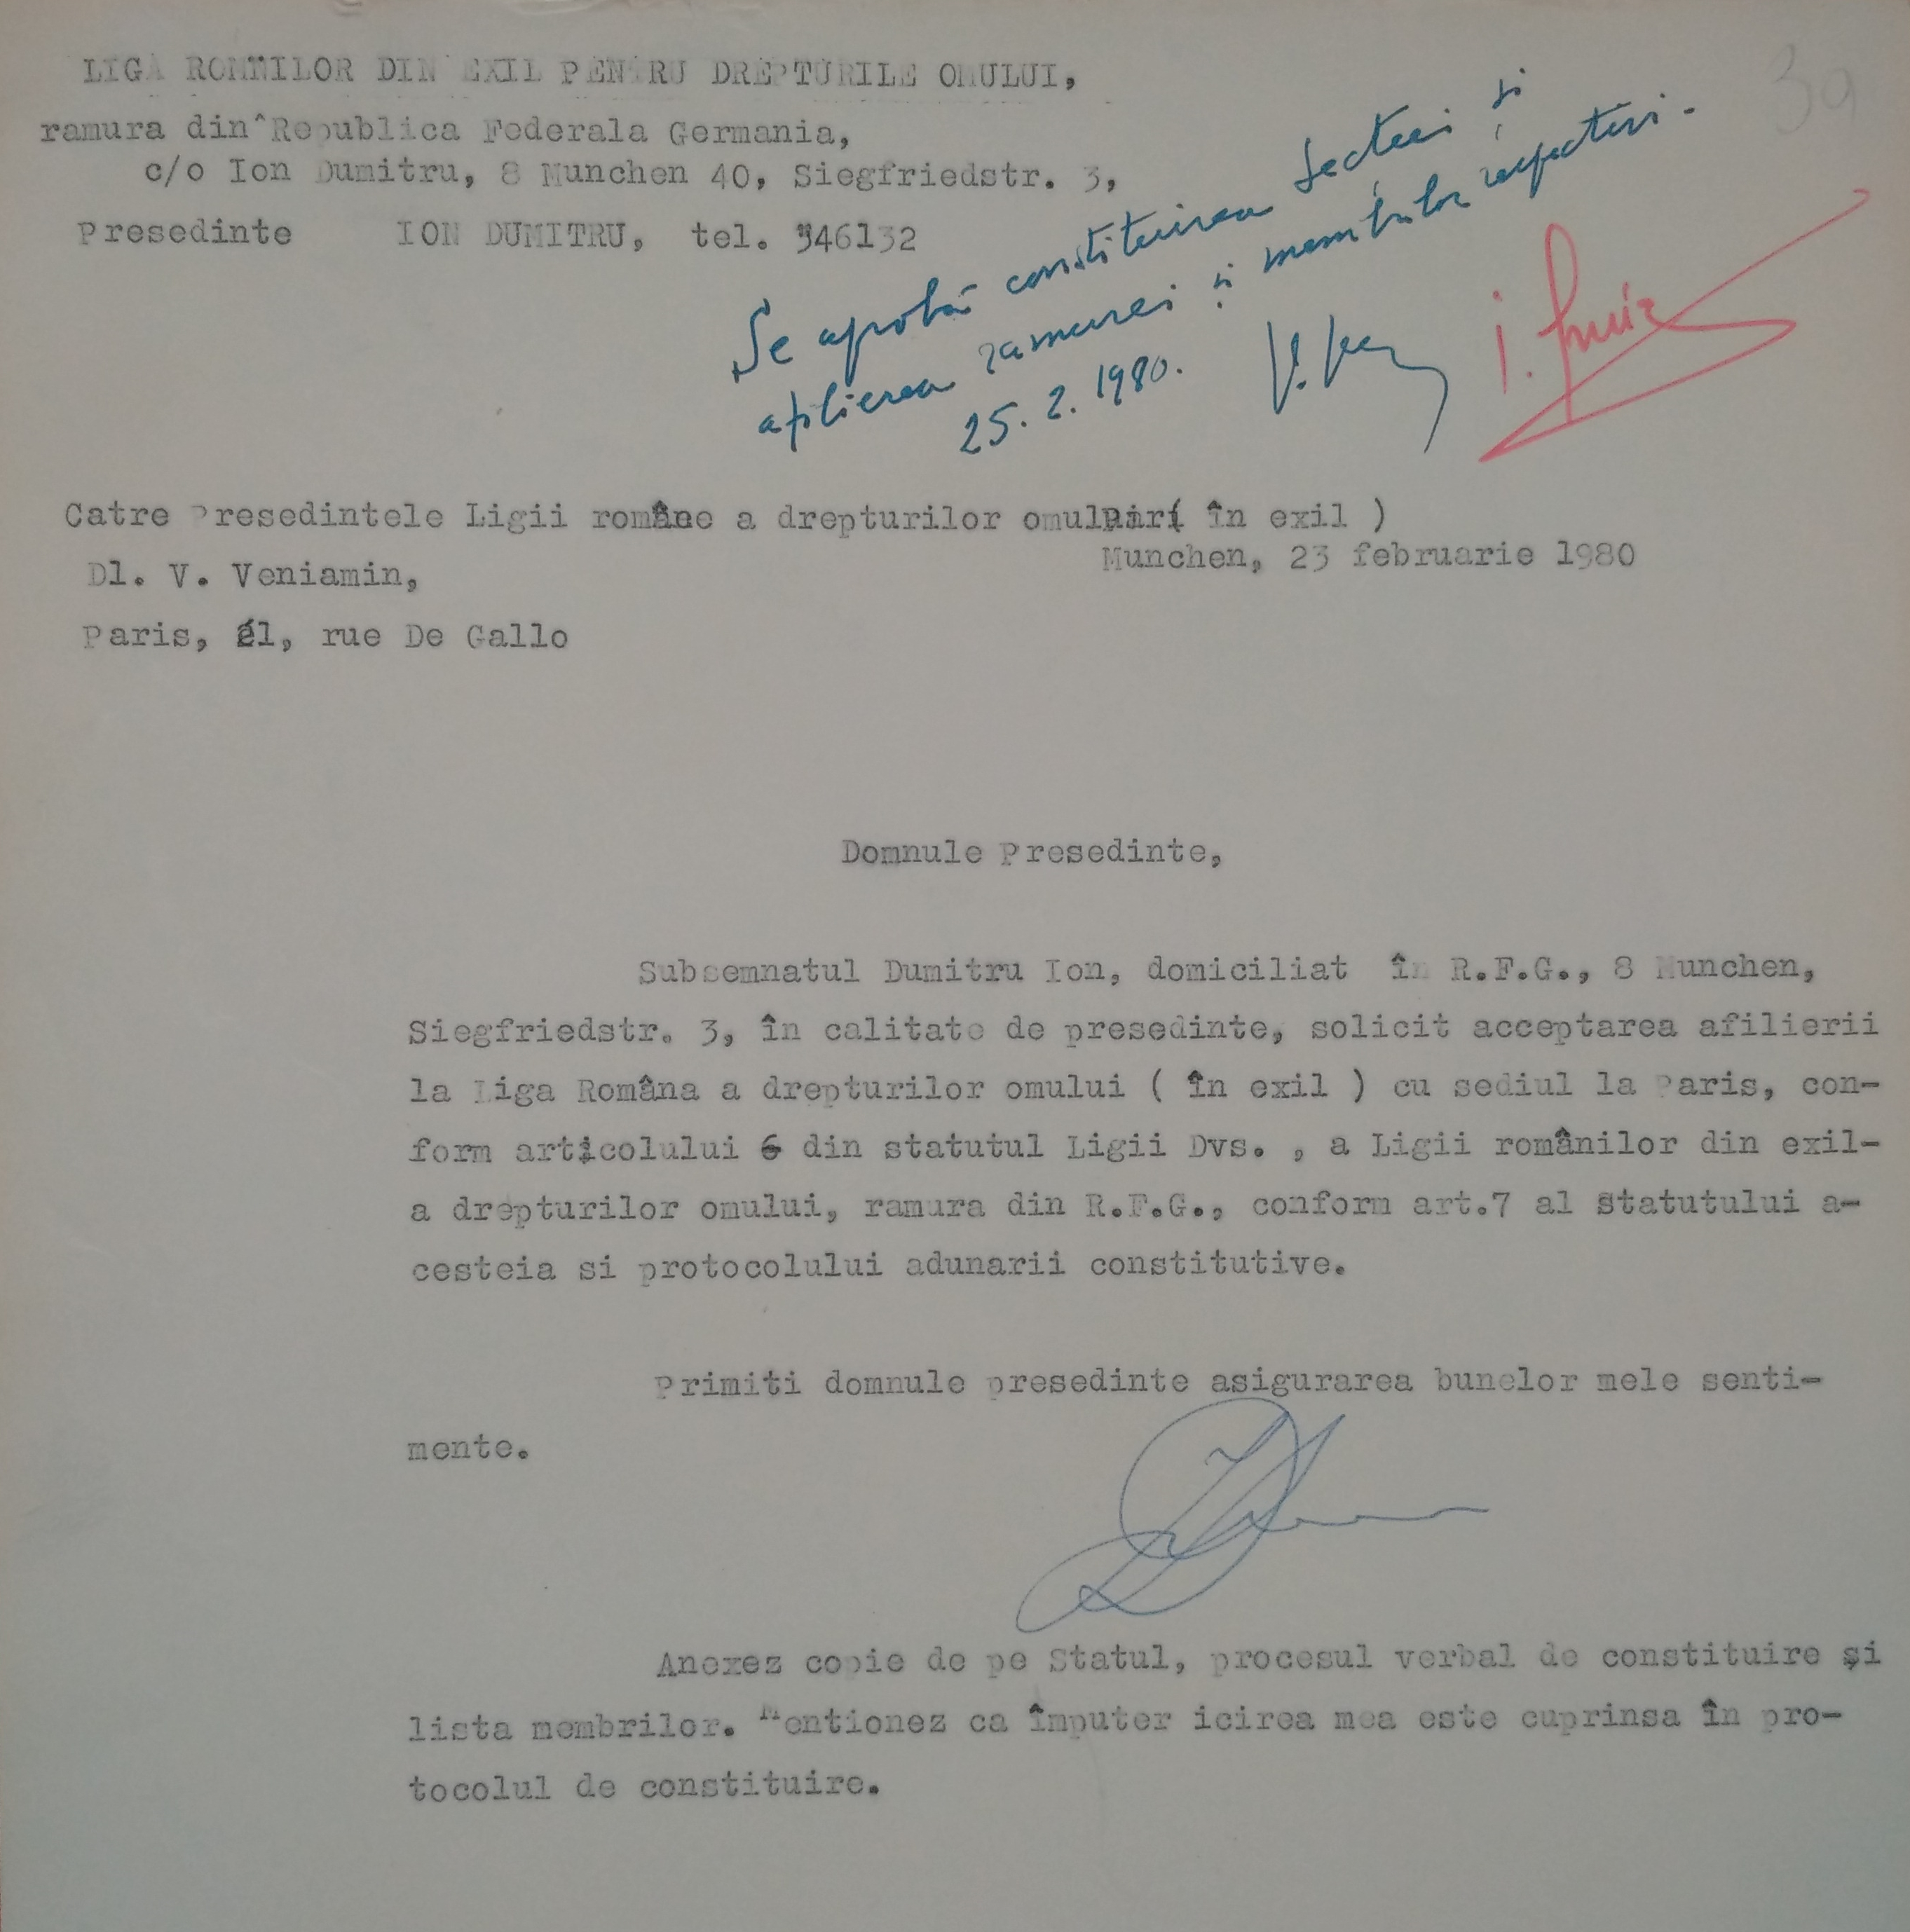 Letter from Ion Dumitru to Virgil Veniamin, 23 February 1980, Munich